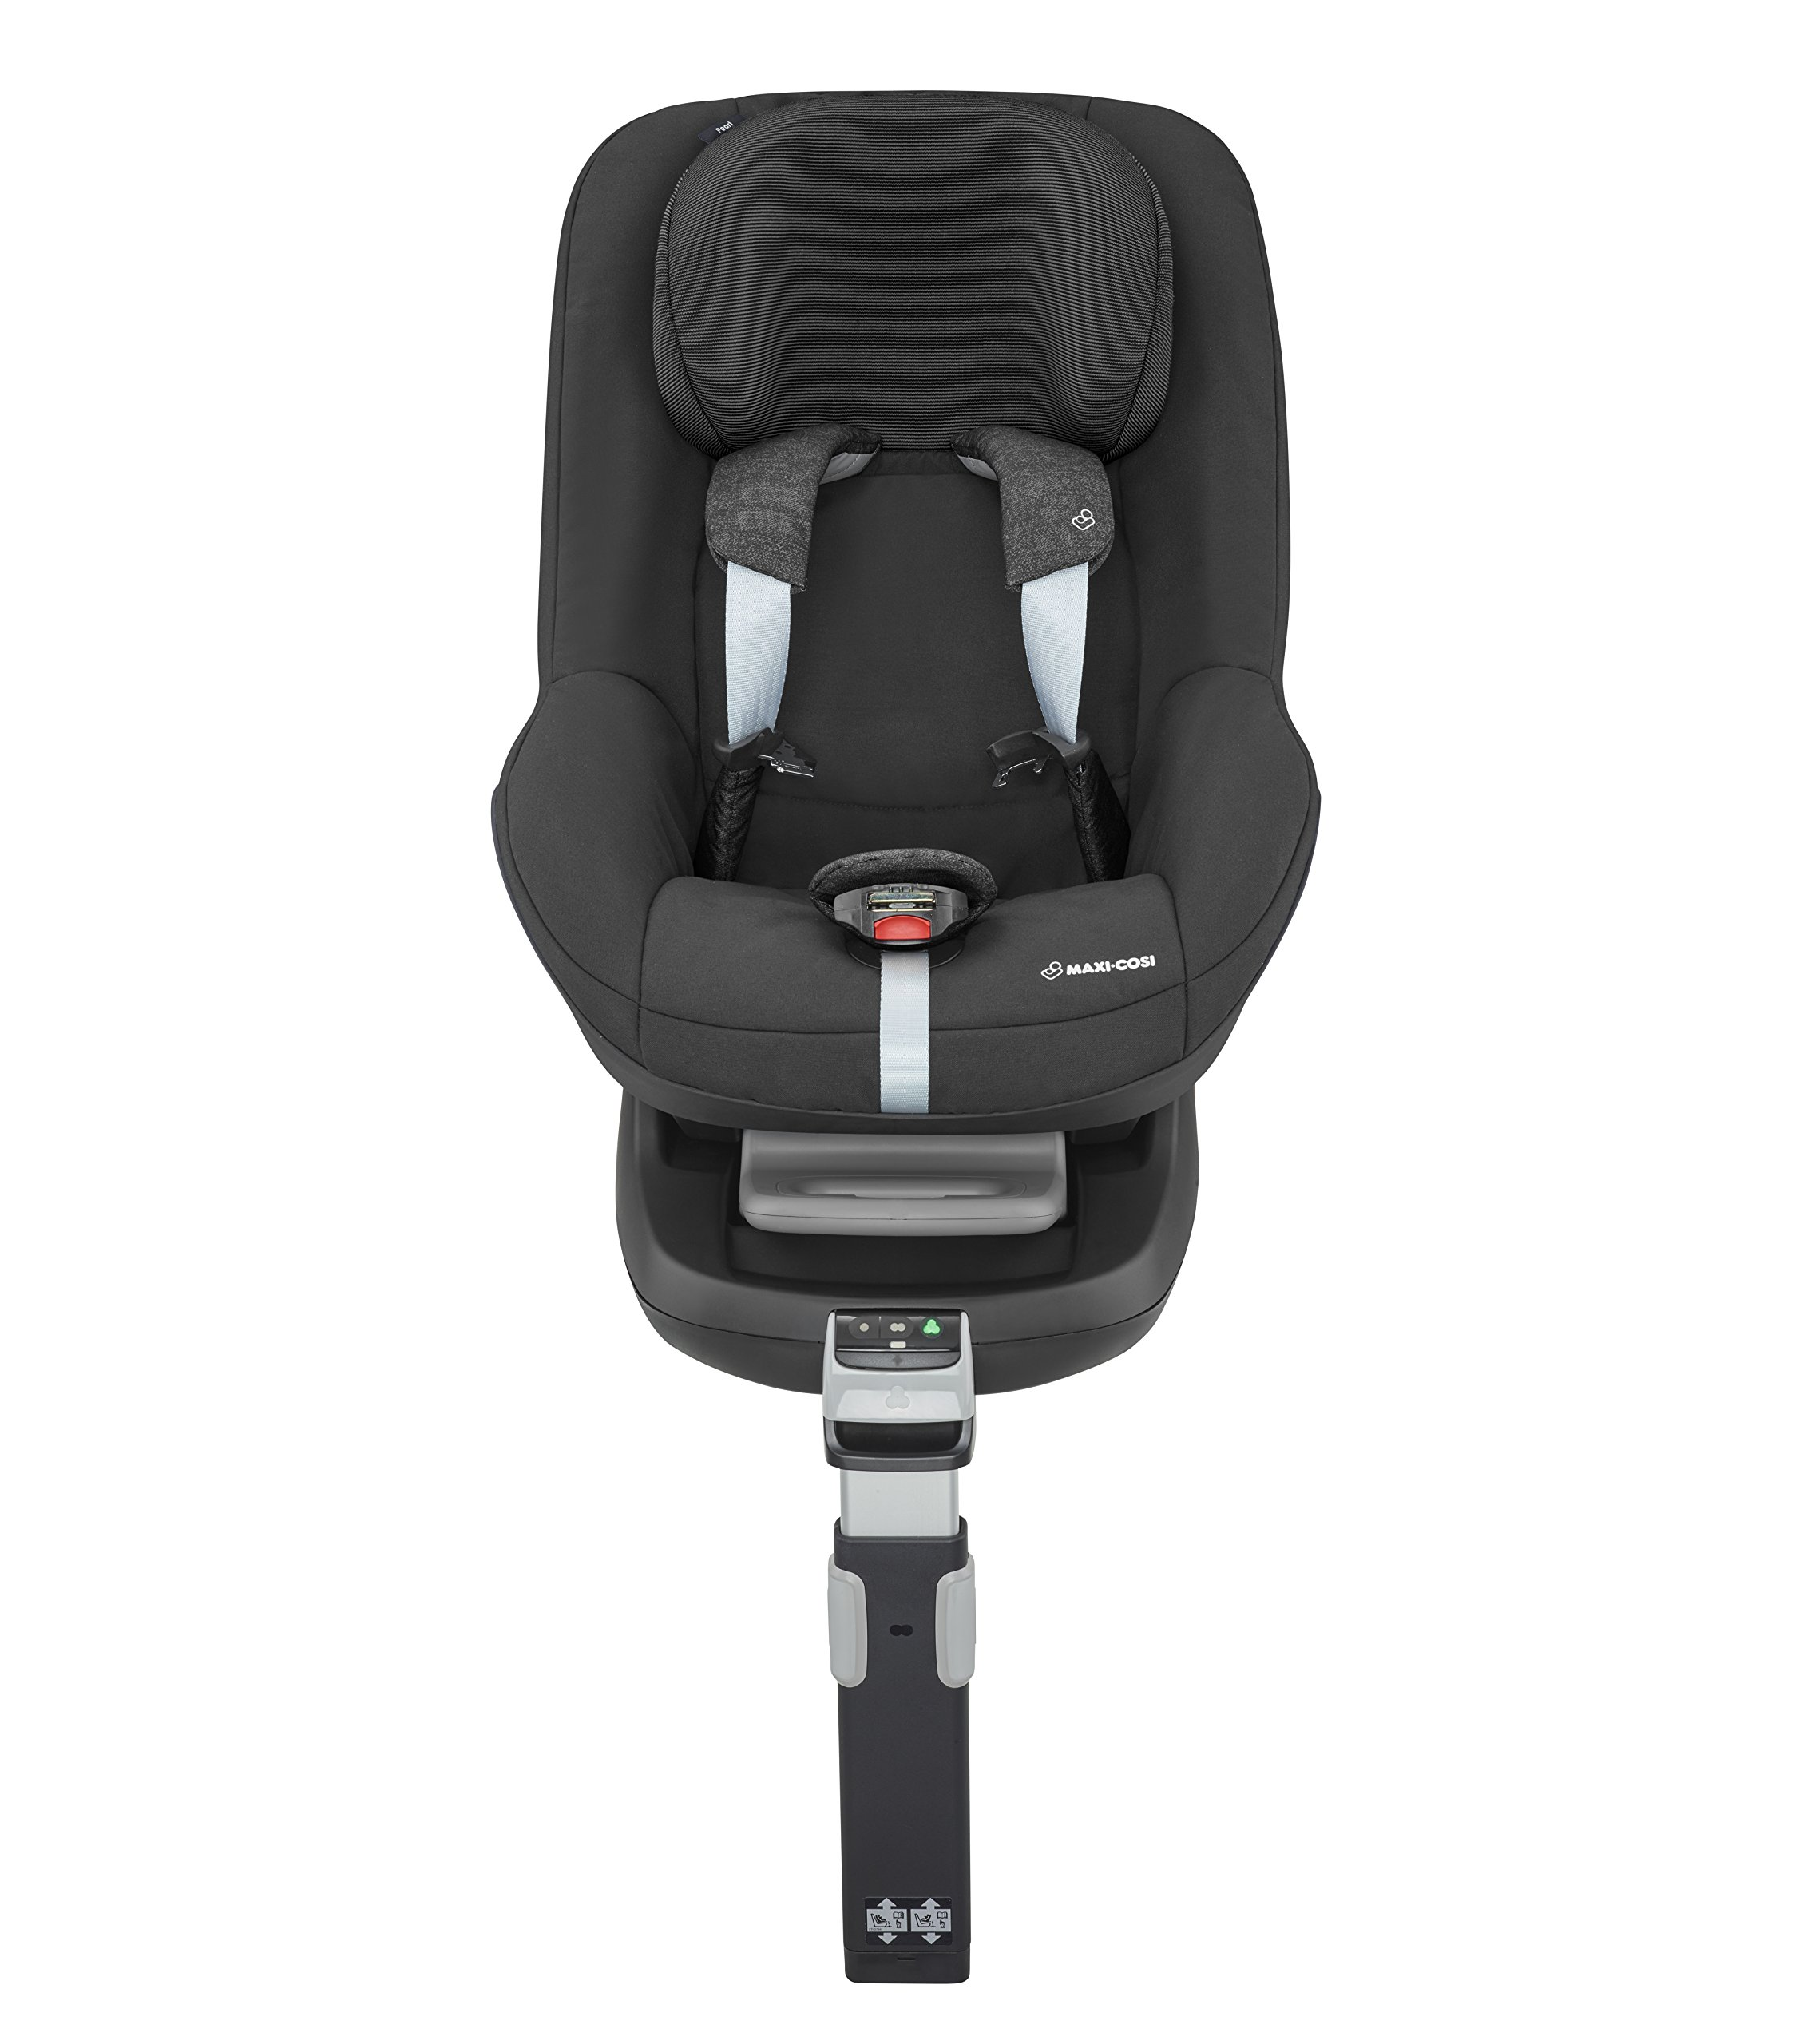 Maxi-Cosi Pearl Toddler Car Seat Group 1, ISOFIX Car Seat, Compact, , 9 Months - 4 Years, 9-18 kg, Nomad Black Maxi-Cosi Interactive visual and audible feedback when the pearl is correctly installed with the maxi-cosi family fix base in the car Spring-loaded, stay open harness to make buckling up your toddler easier as the harness stays out of the way Simultaneous harness & headrest adjustment can be operated with one-hand 6